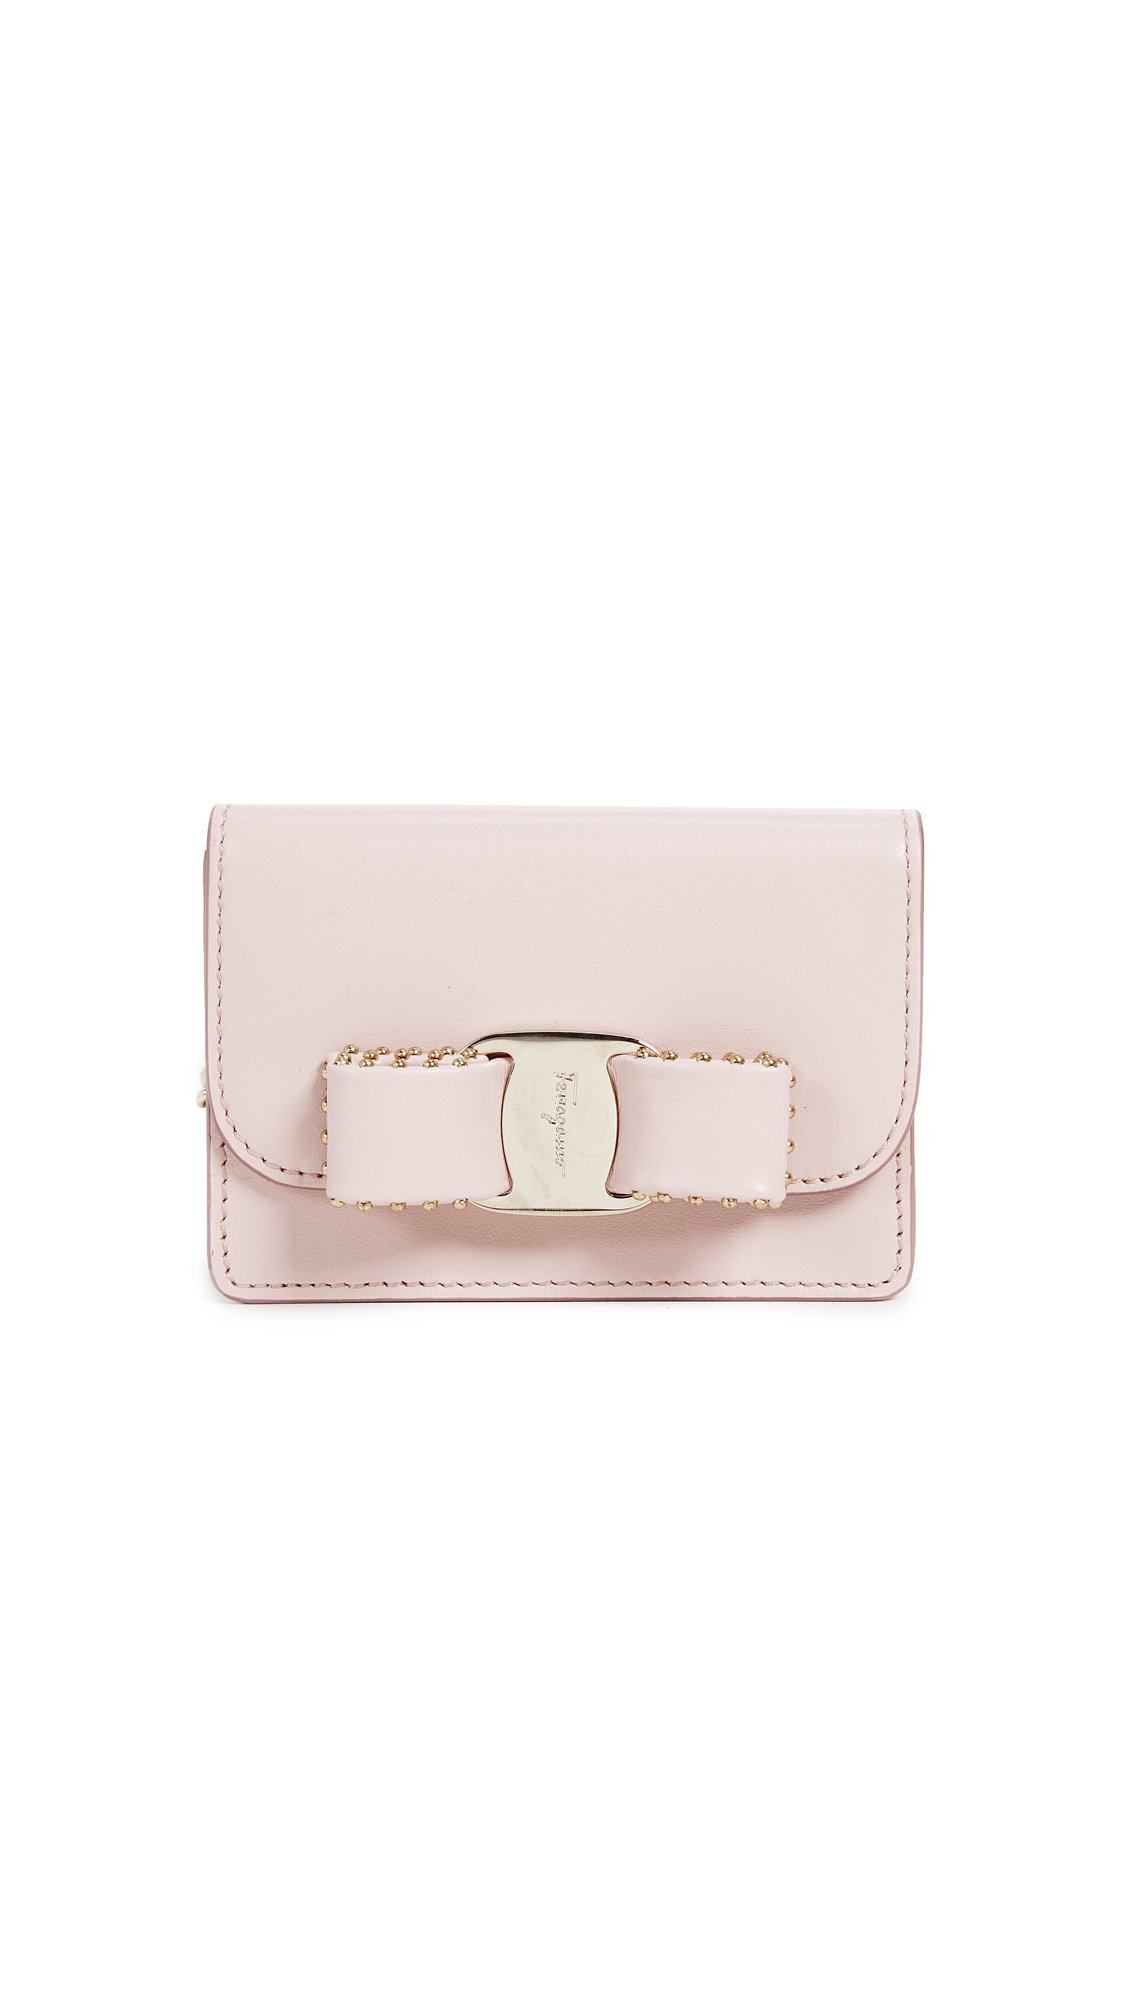 Salvatore Ferragamo Women's Vara Rainbow Studs Key Chain Card Case, Bon Bon, One Size by Salvatore Ferragamo